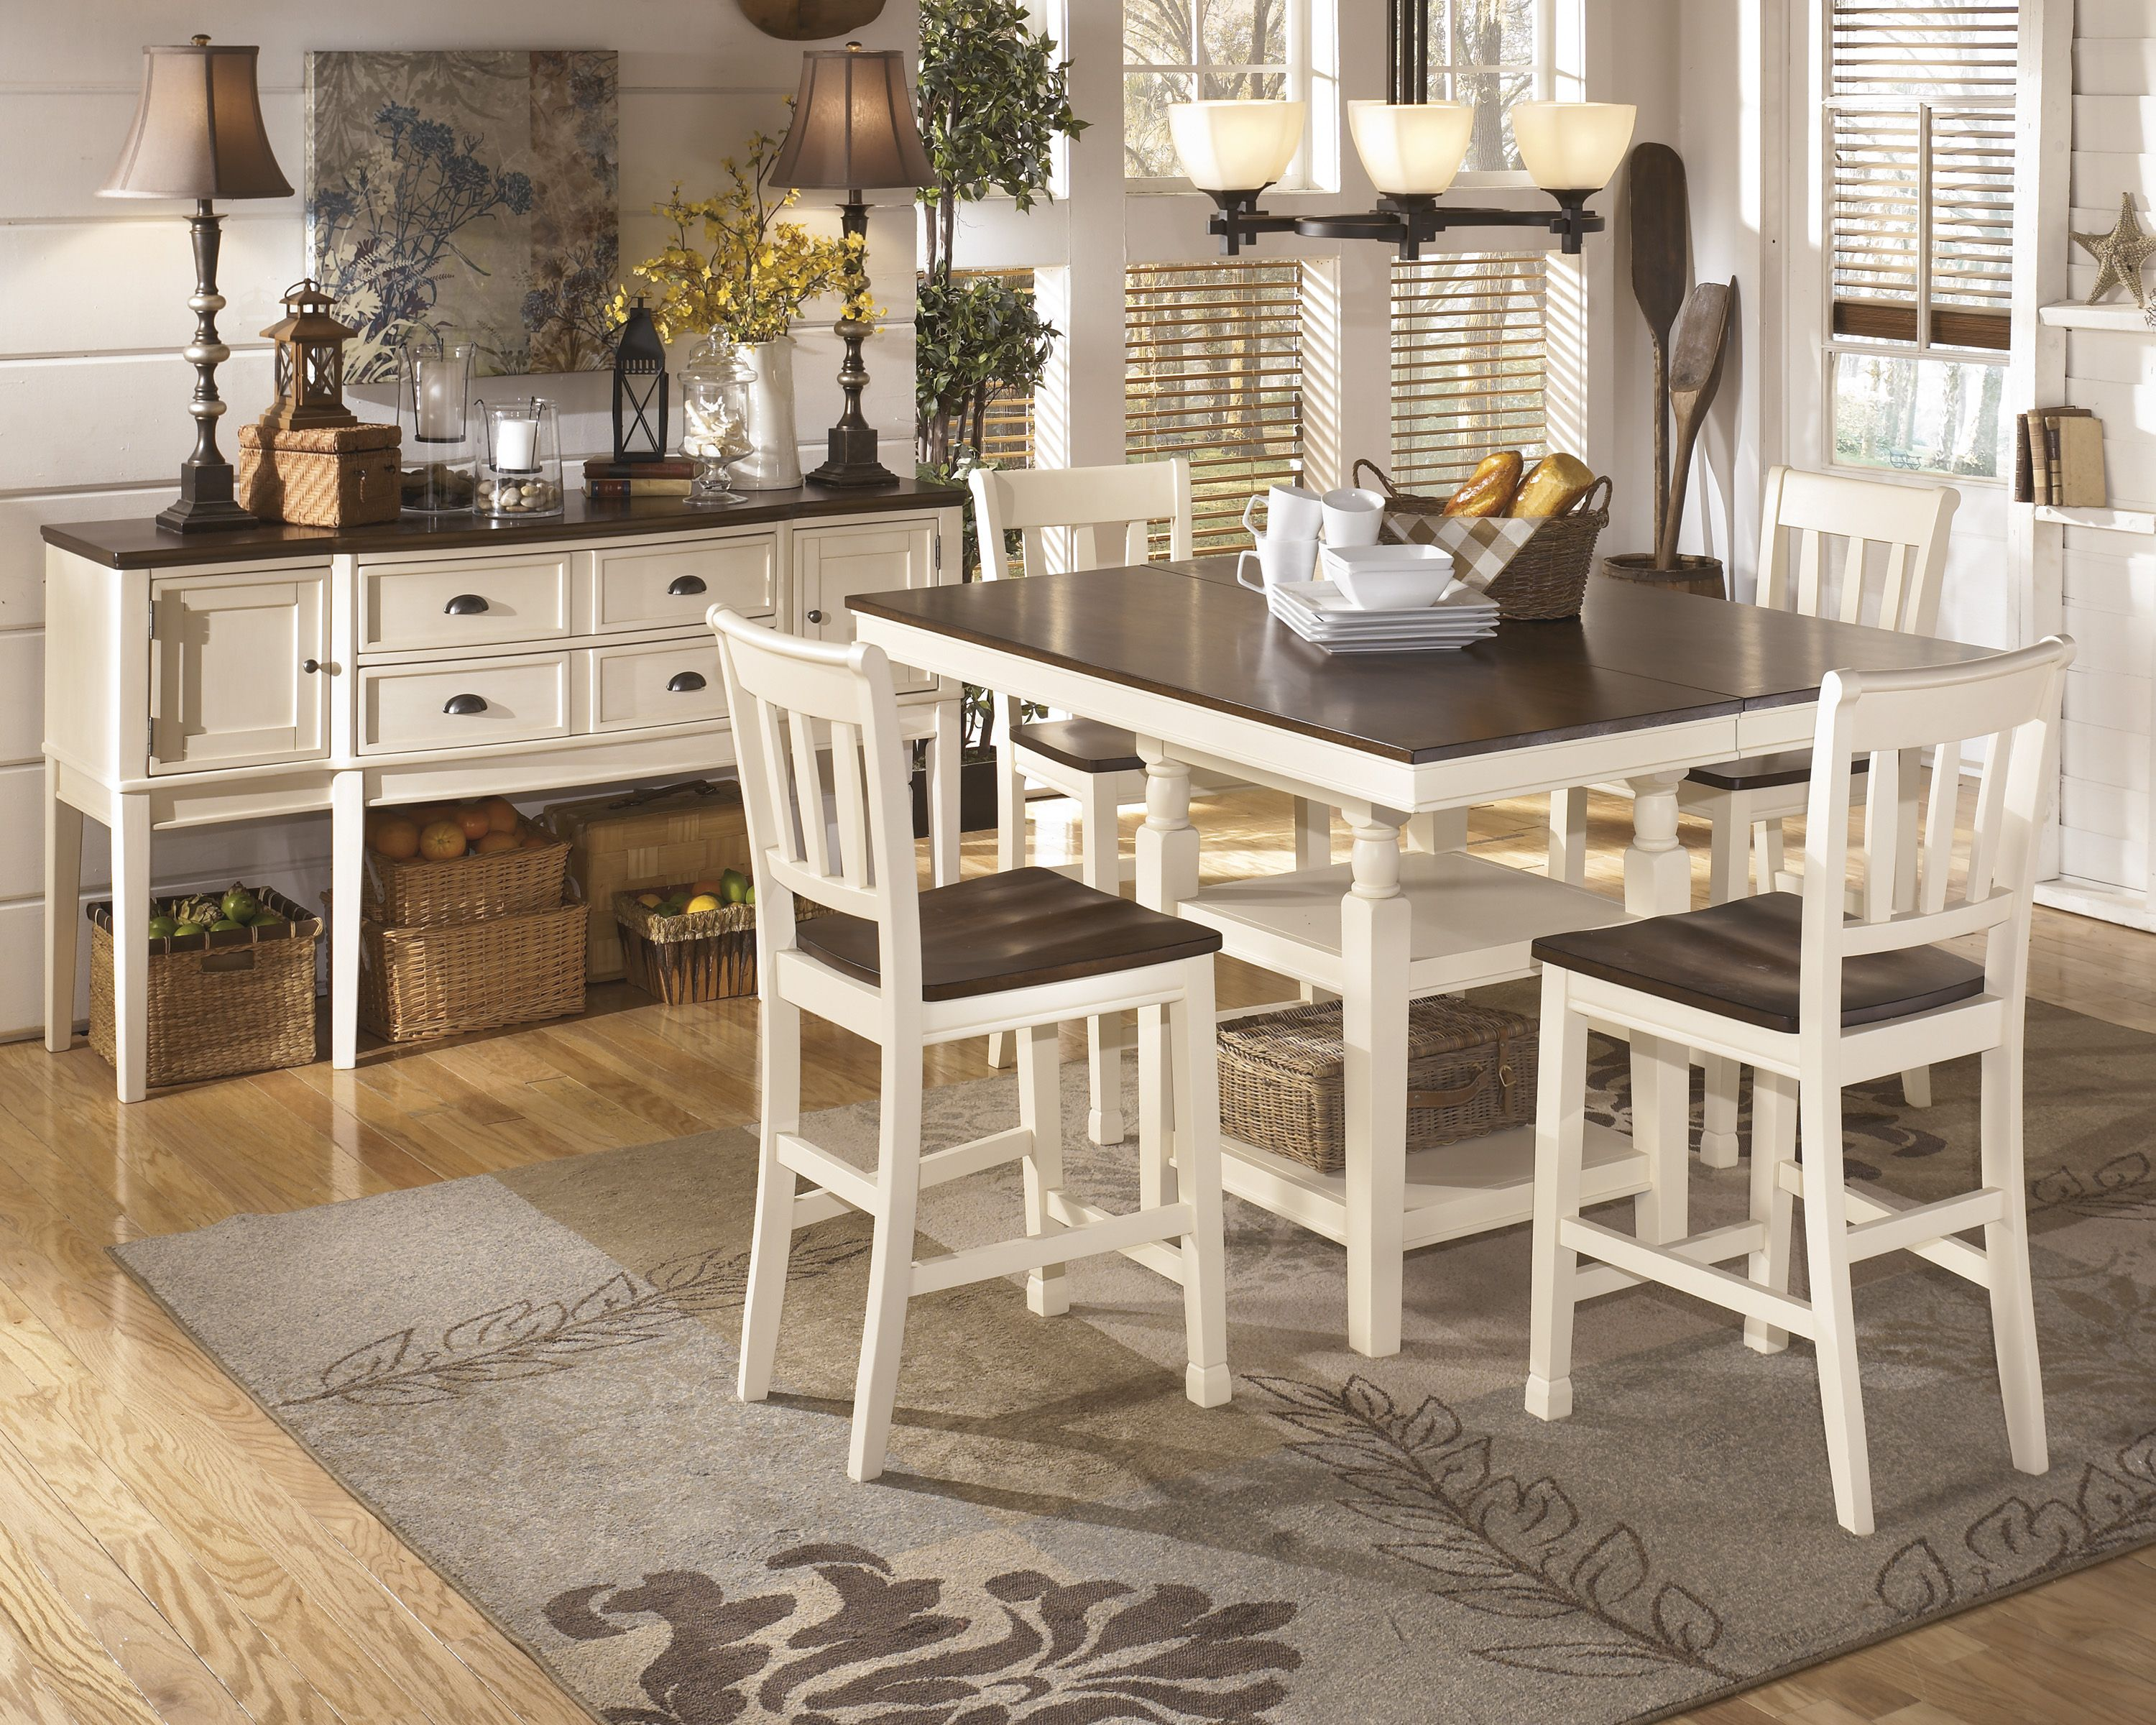 the counterheight table has a removable leaf allowing the